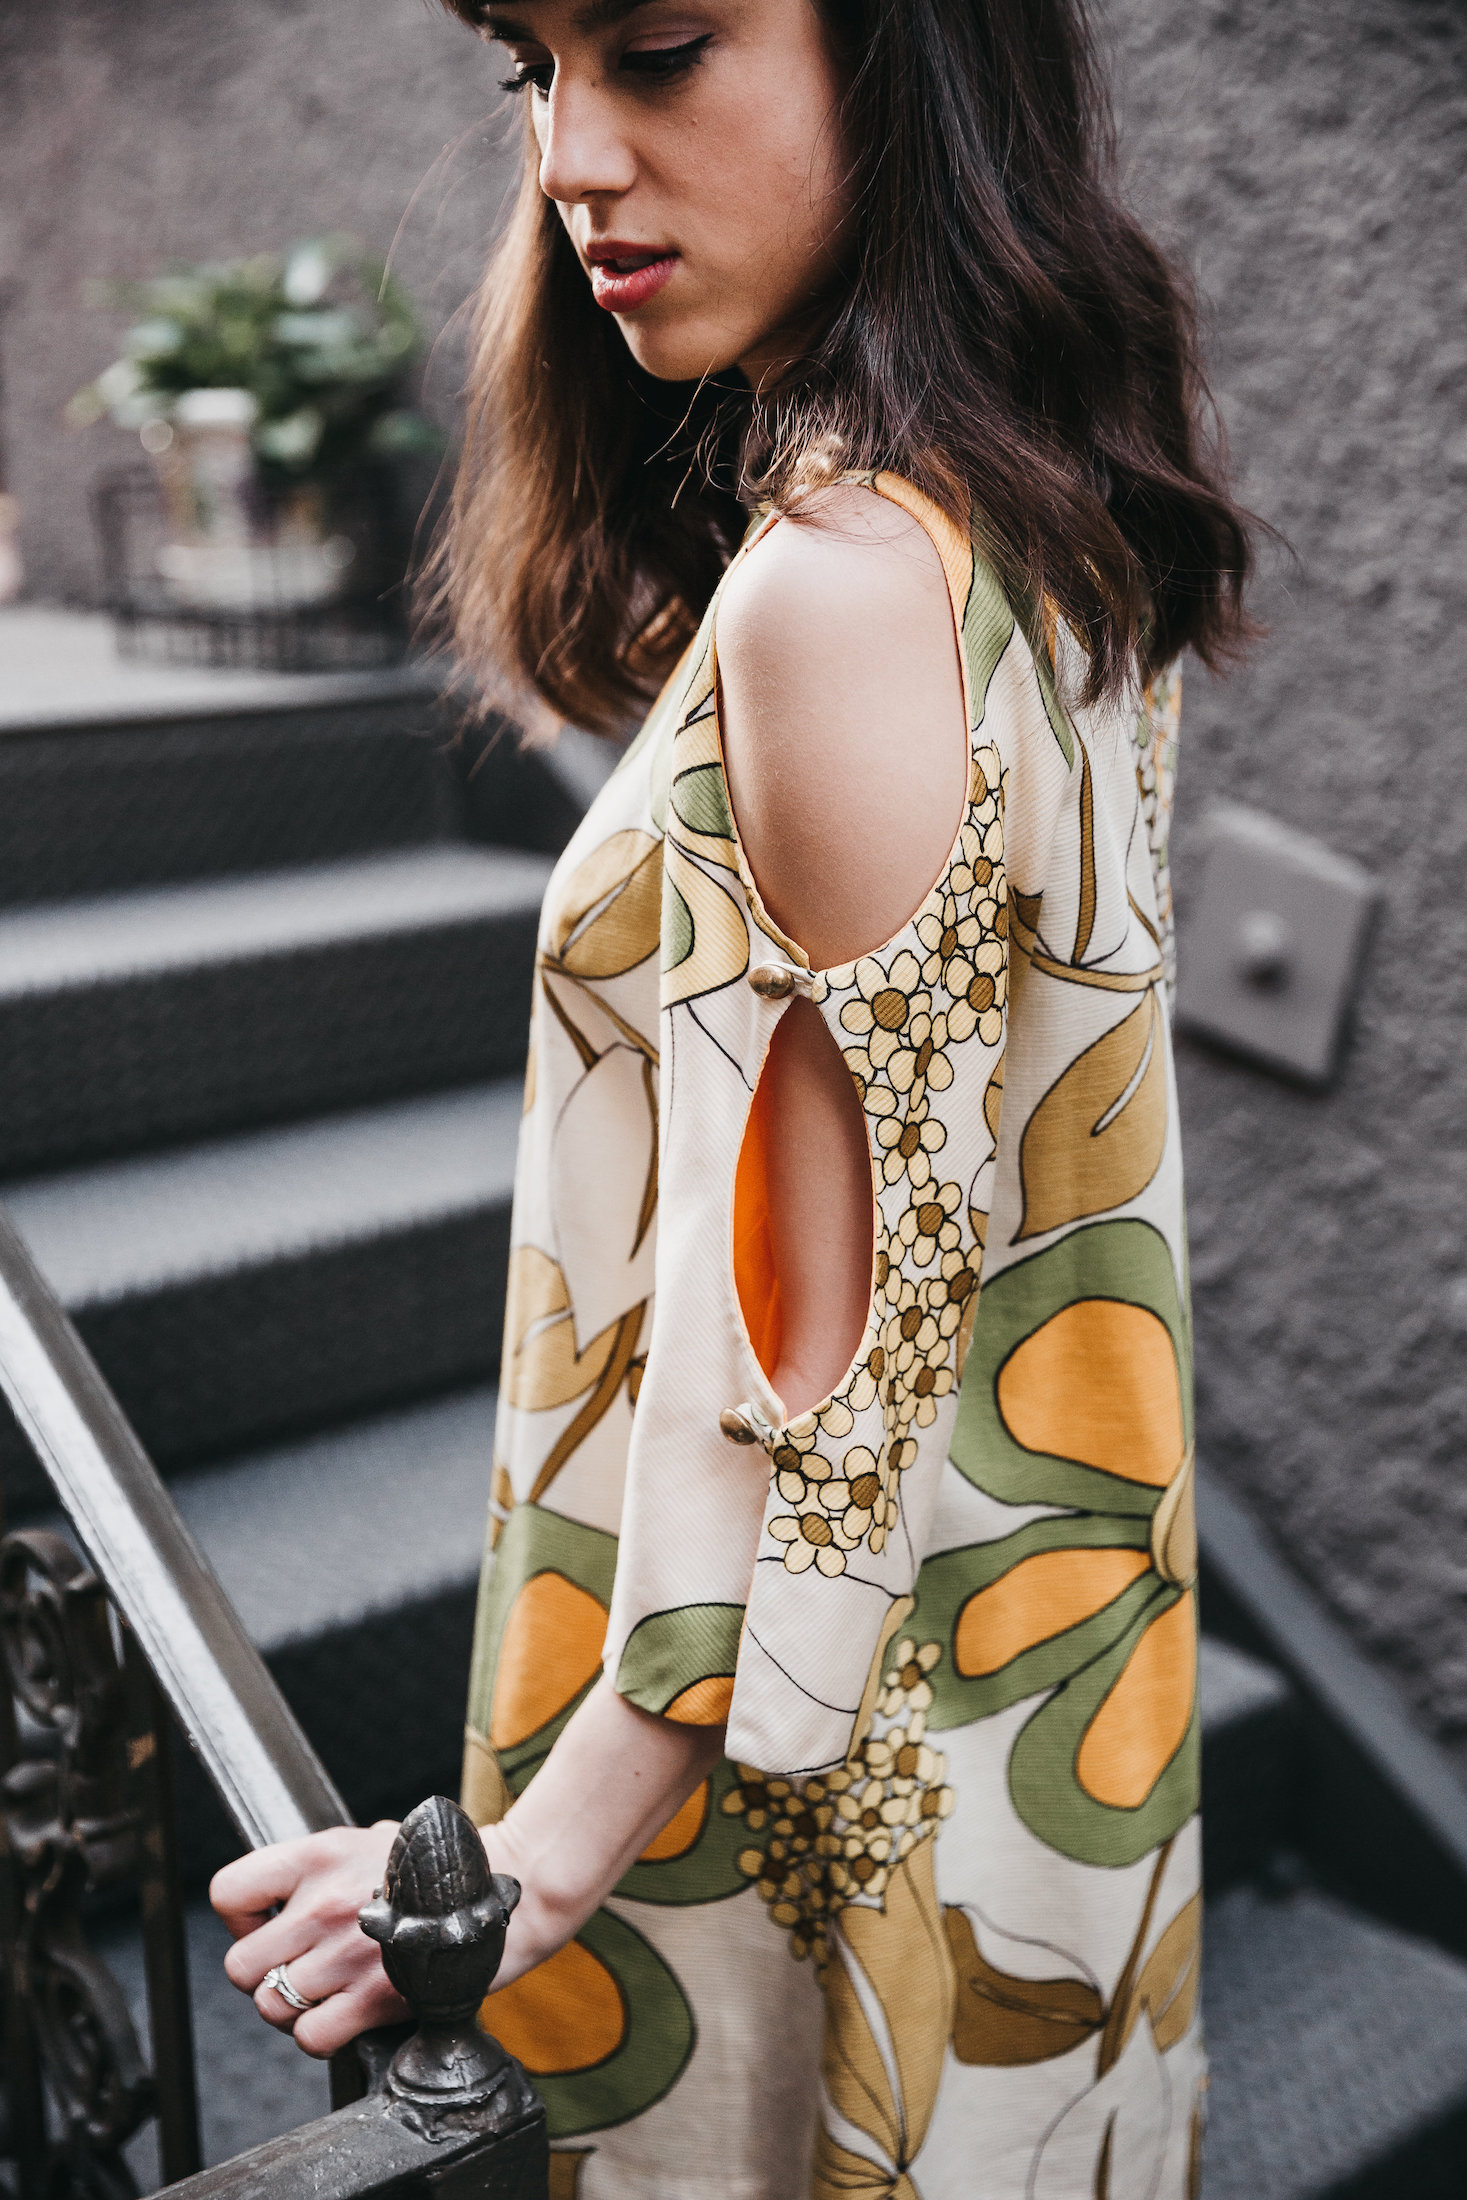 Sleeve detail on a 1970s vintage dress // A Week Of Bright & Bold Ethical Outfits With Michelle Chavez From Michelle For Good on The Good Trade